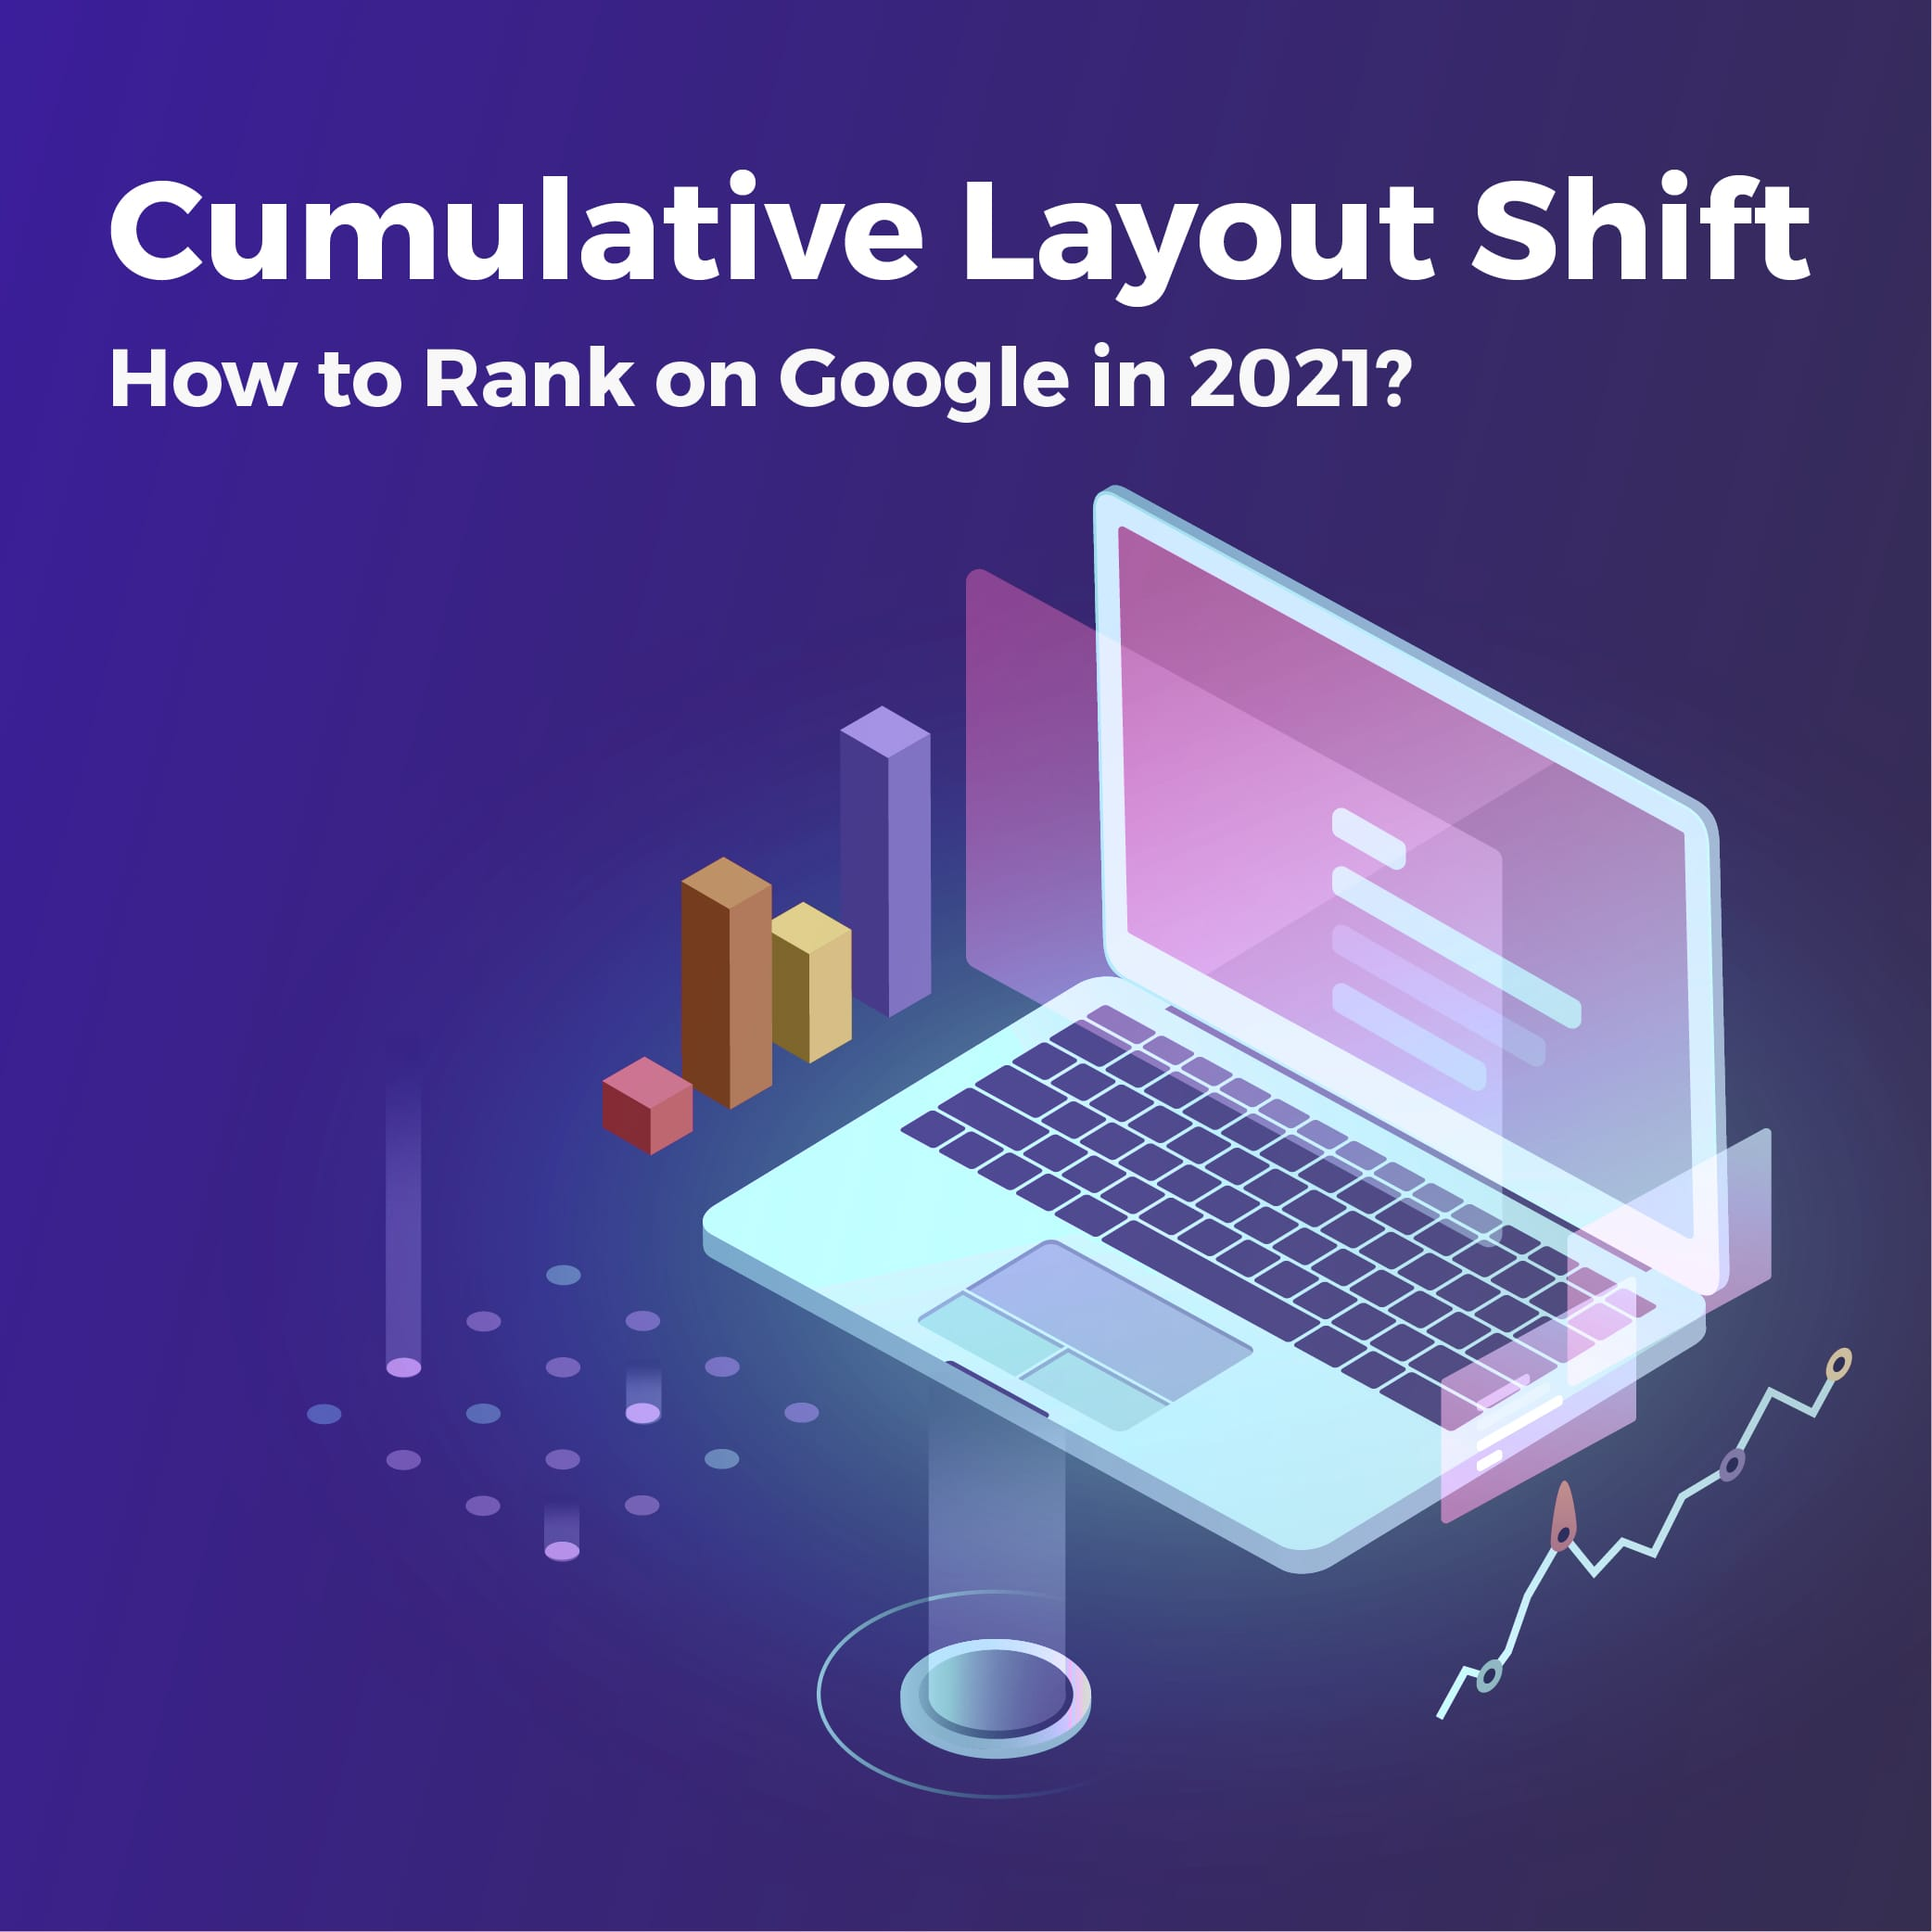 Cumulative Layout Shift – How to Rank on Google in 2021?